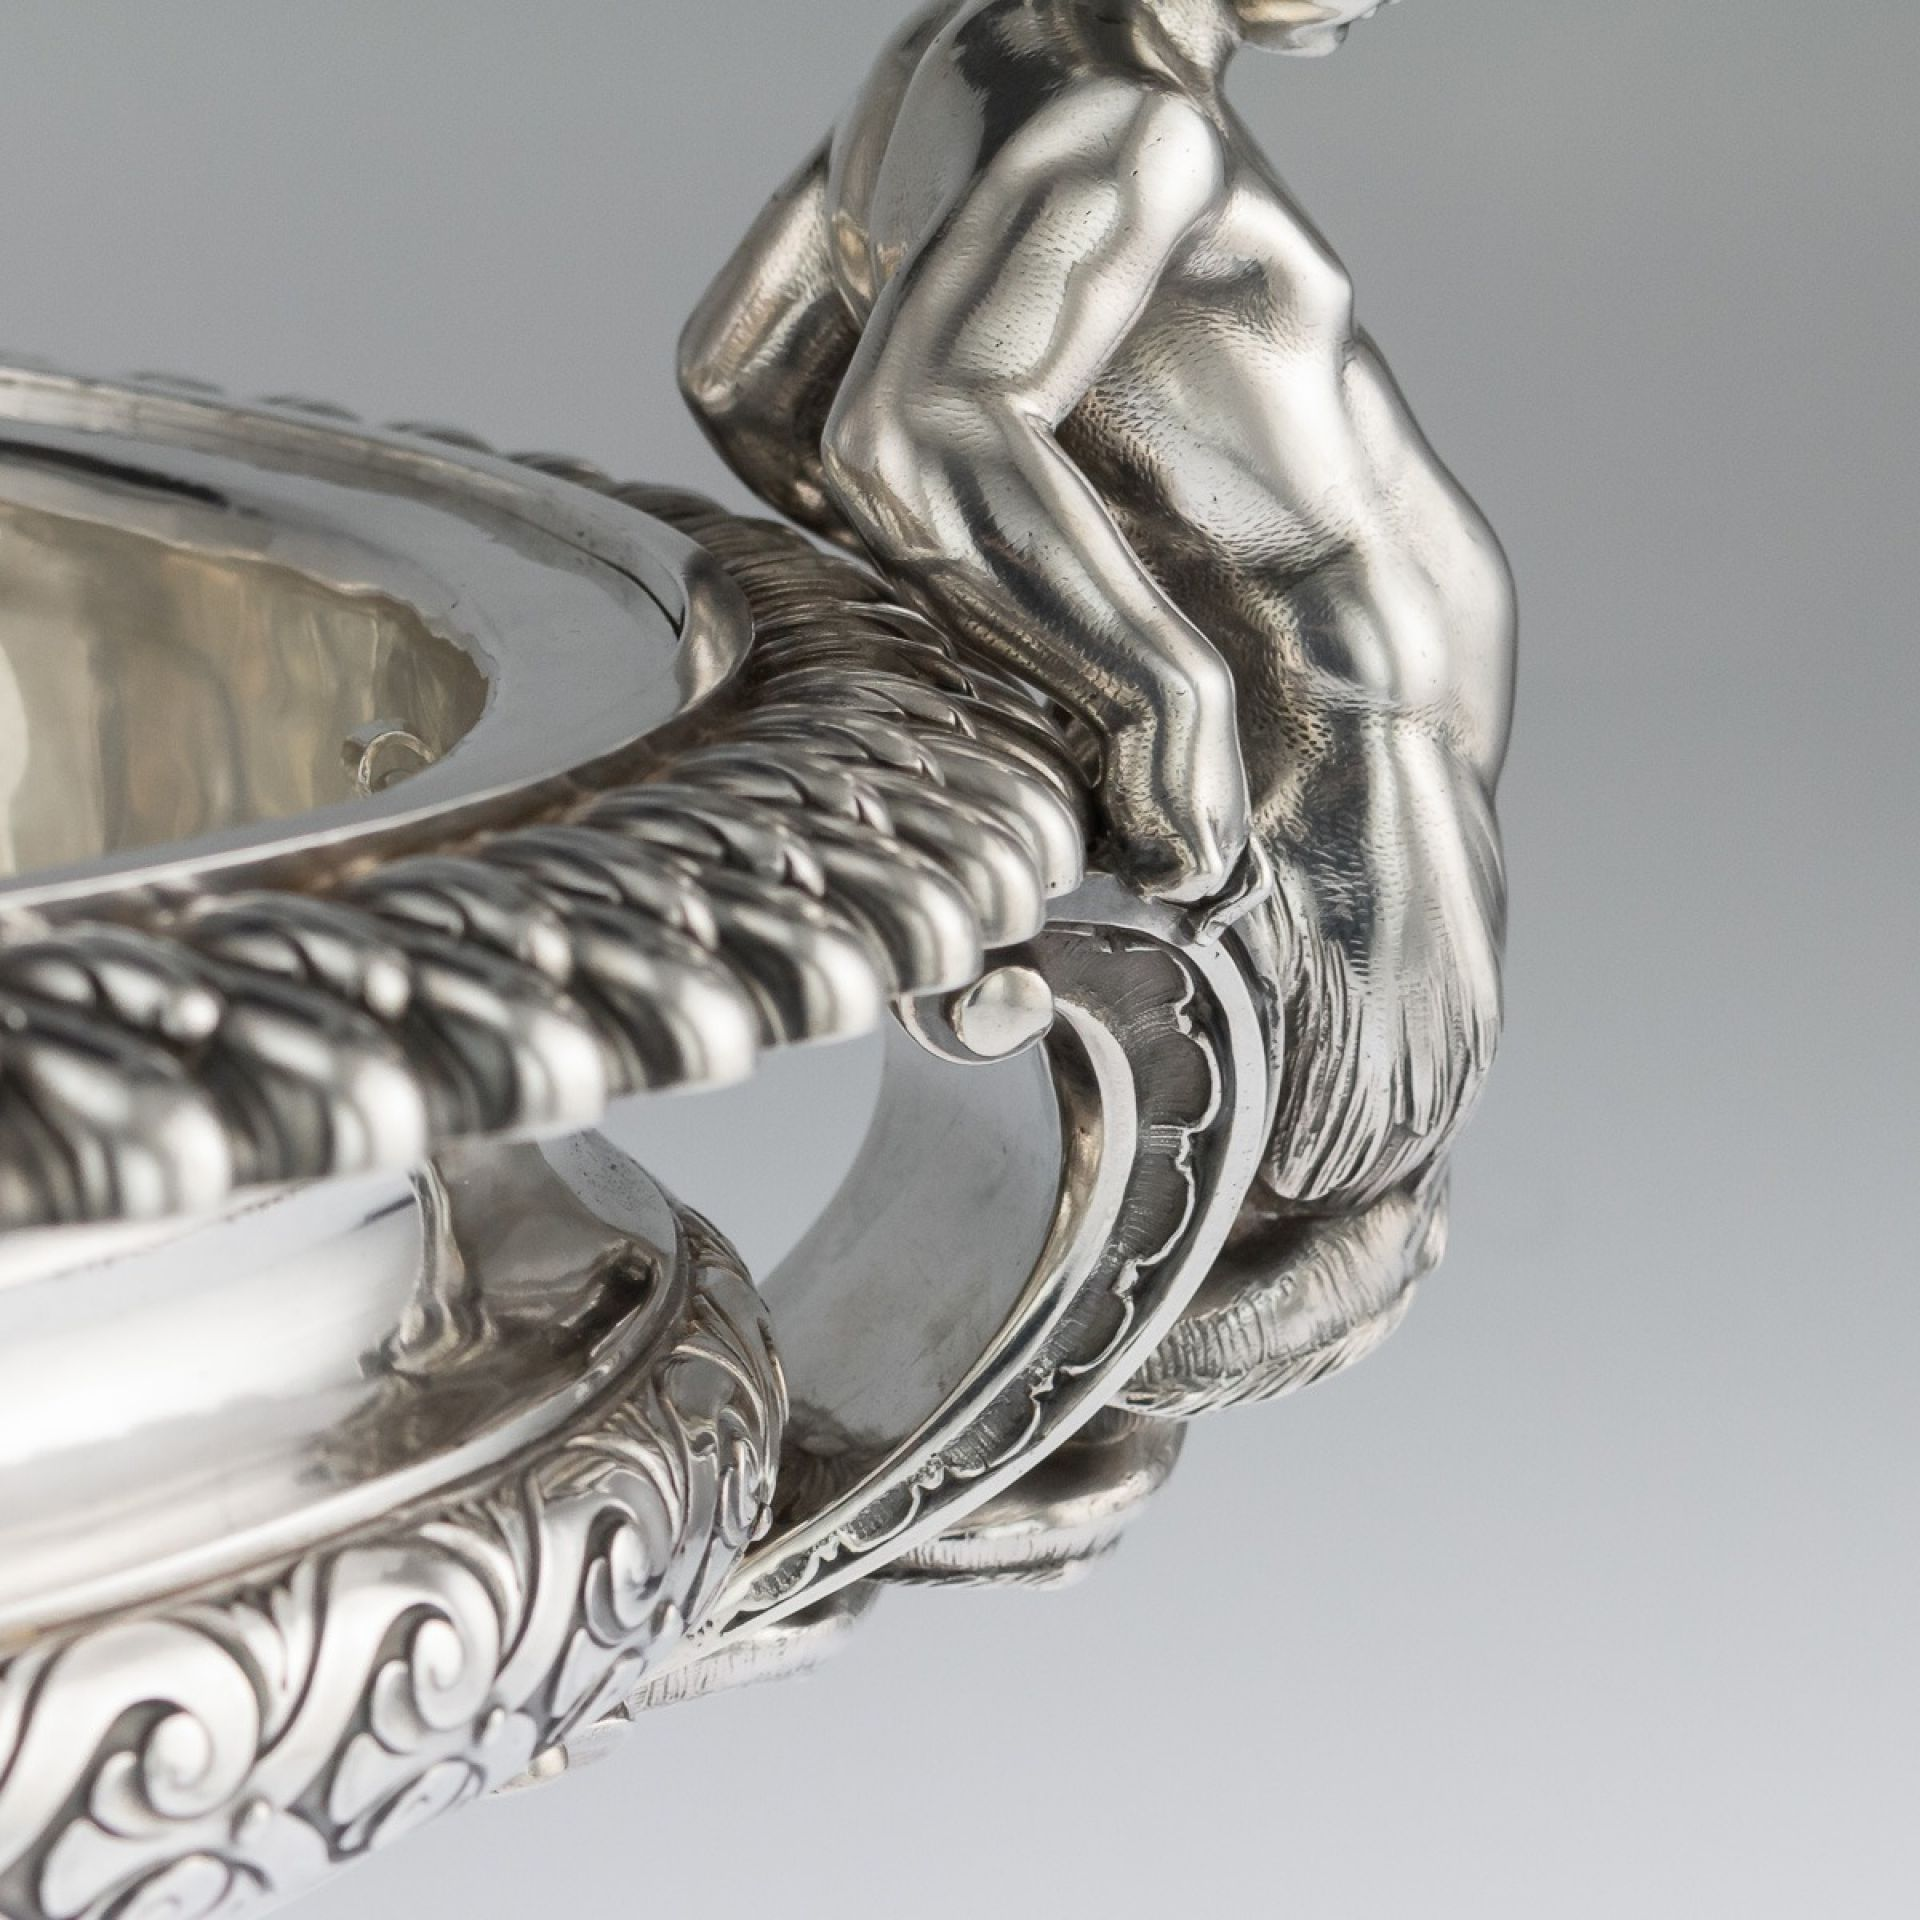 ANTIQUE 19thC FRENCH SOLID SILVER JARDINIERE CENTREPIECE, ODIOT c.1880